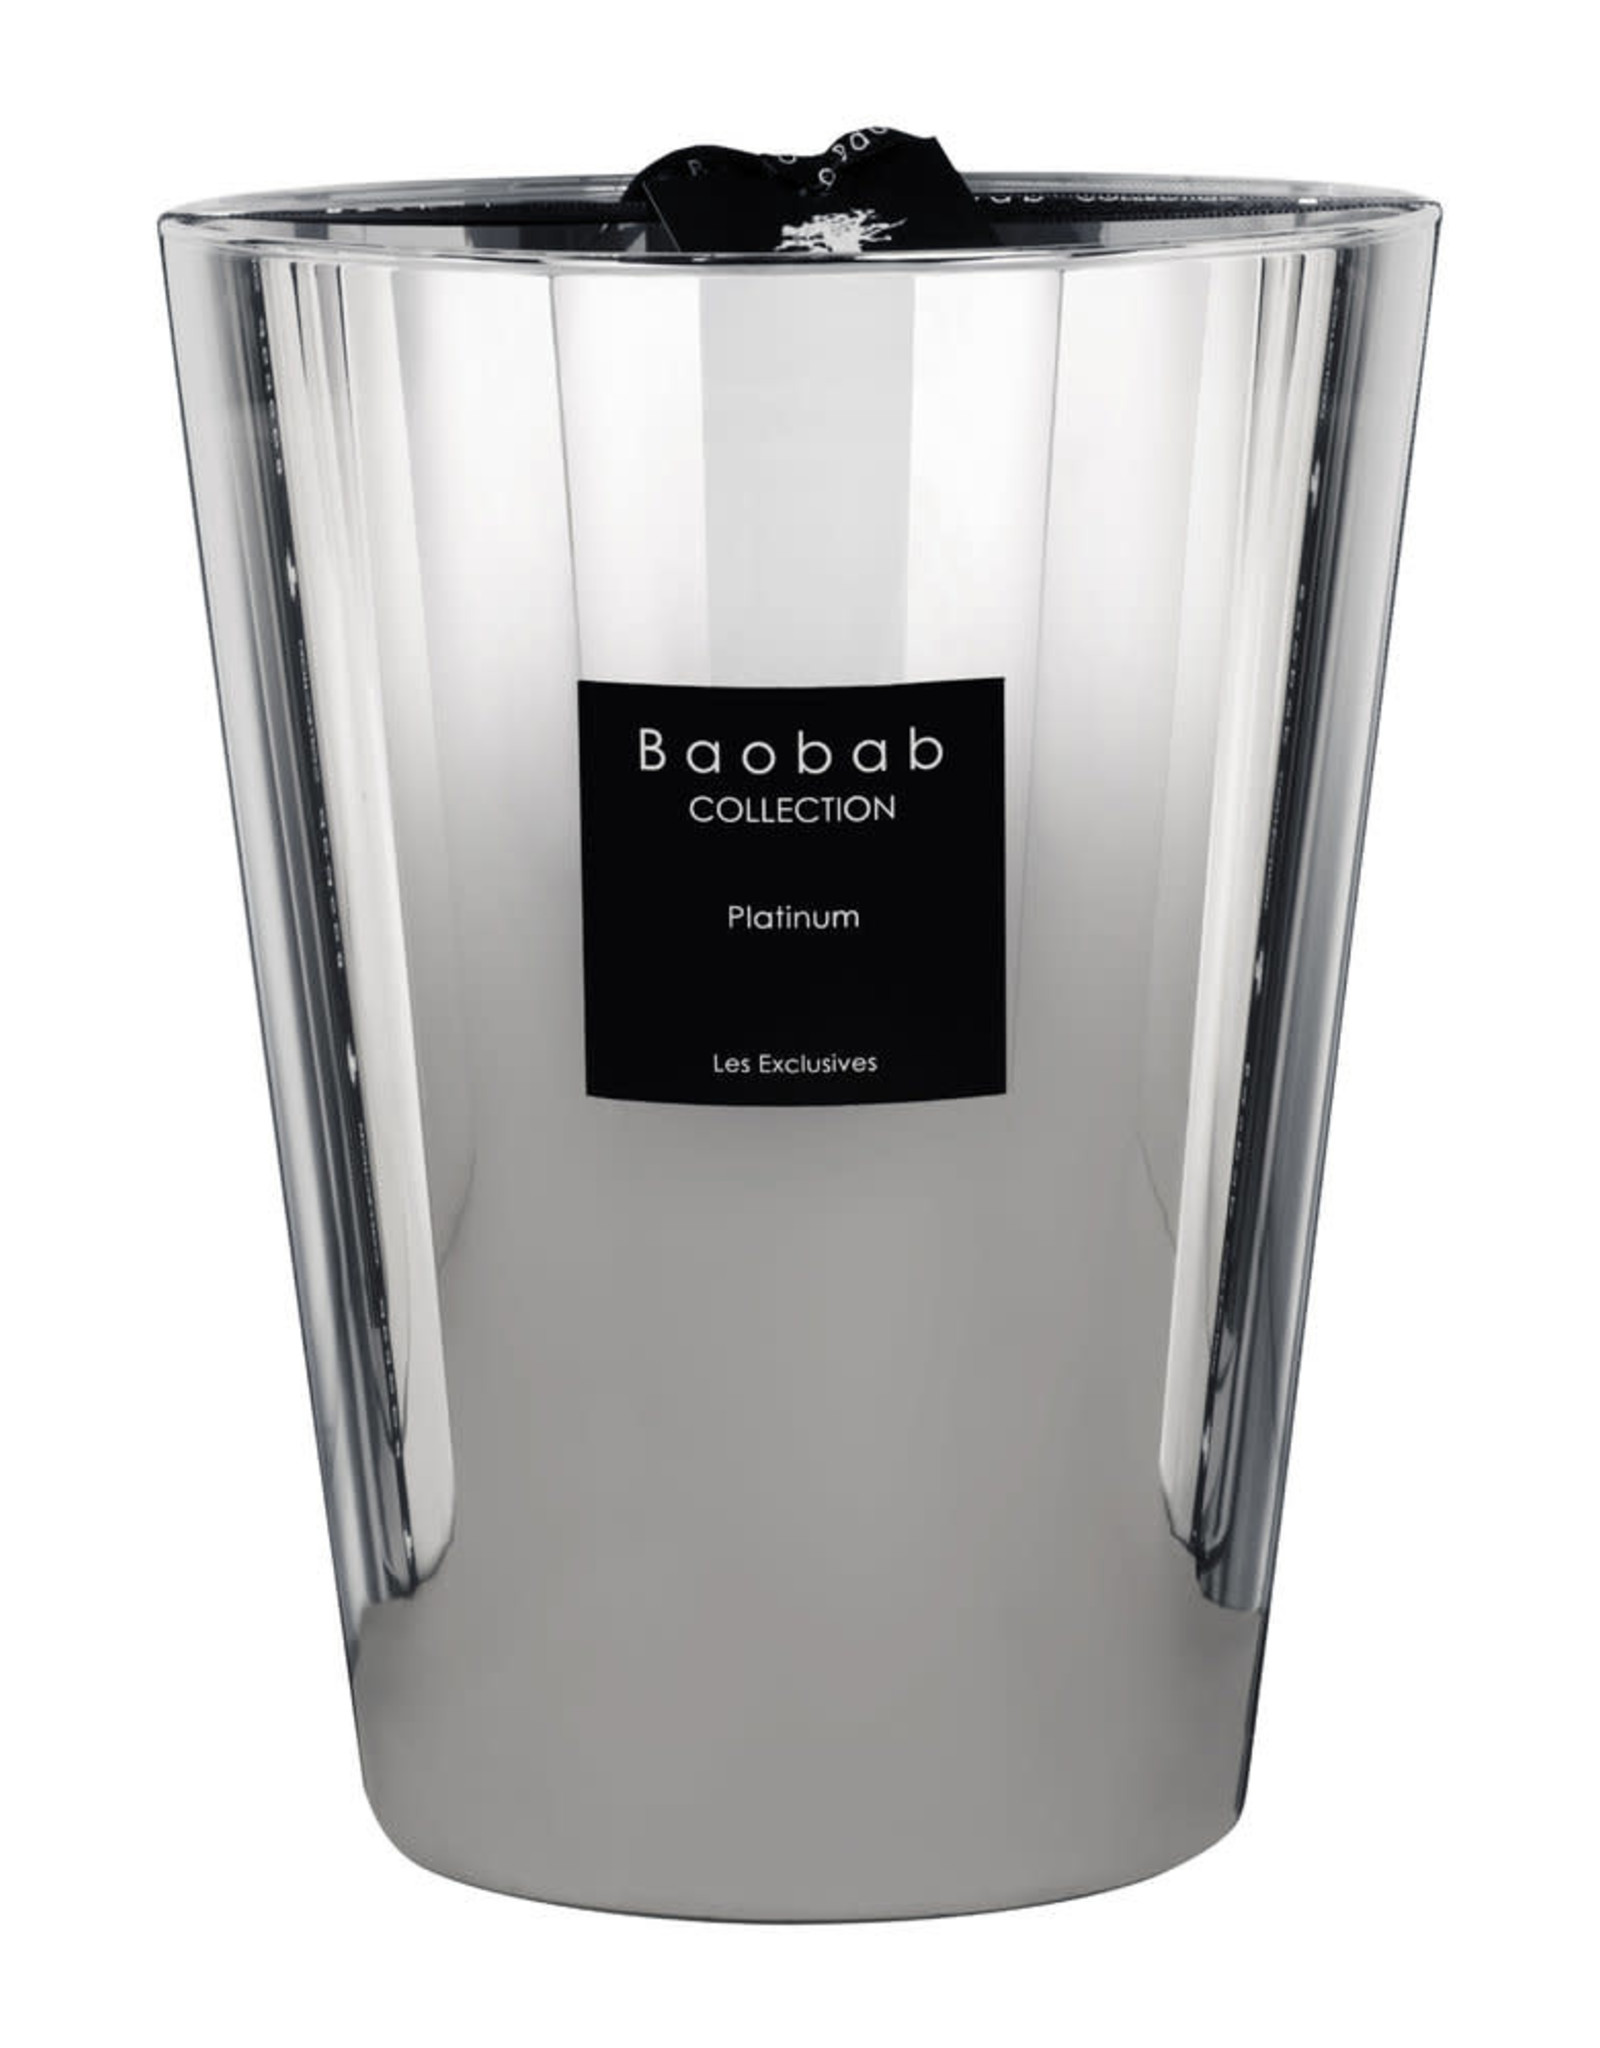 Baobab LES EXCLUSIVES - PLATINUM